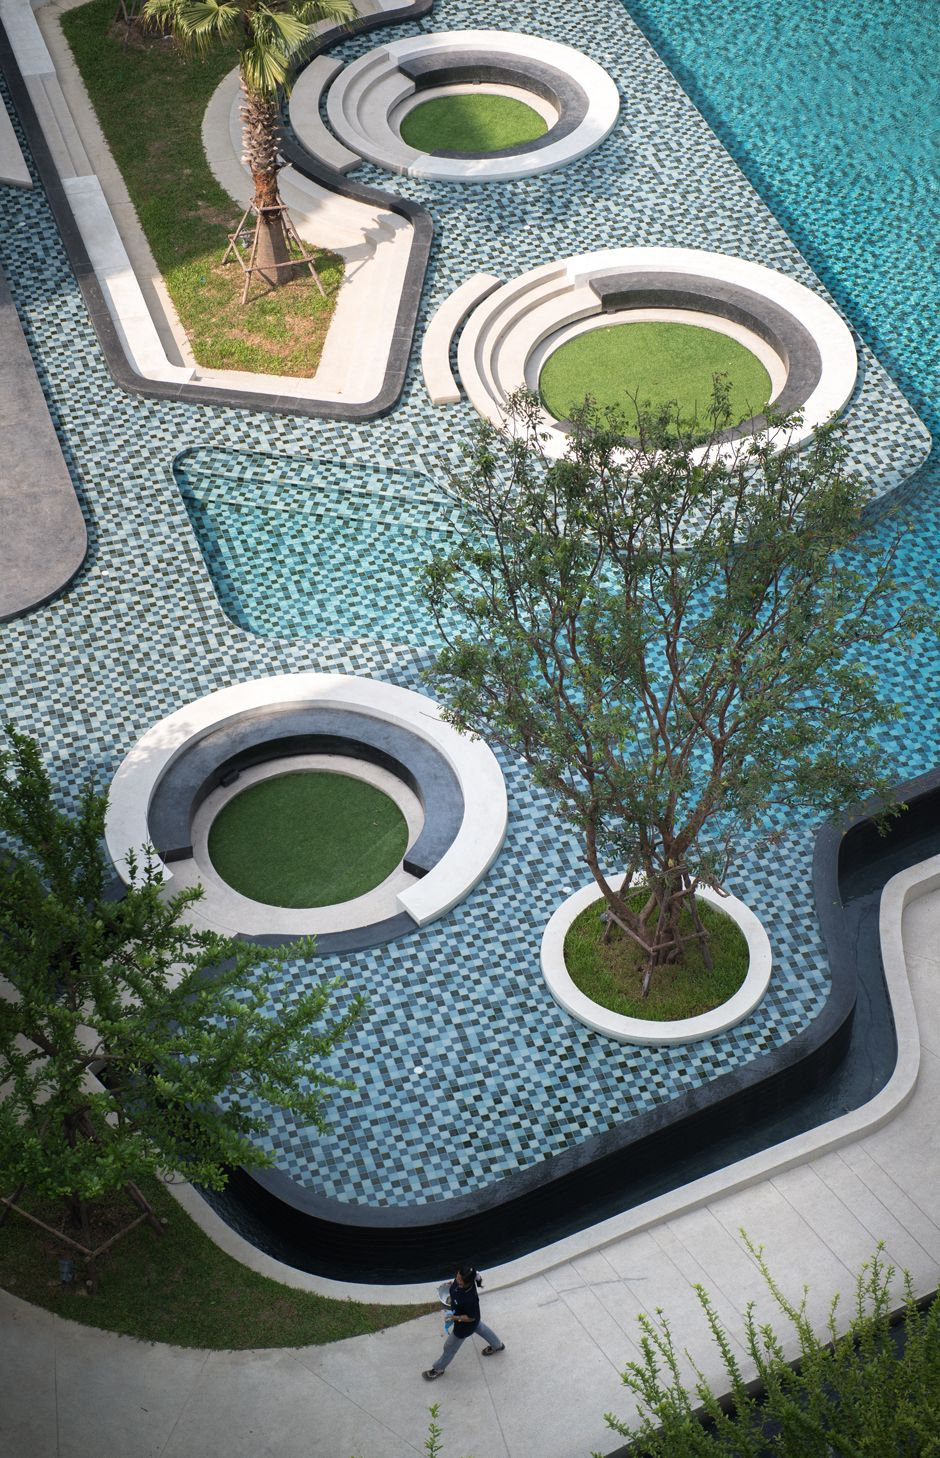 Elio del ray bangkok thailand by redland scape ltd a part for Pool design concepts